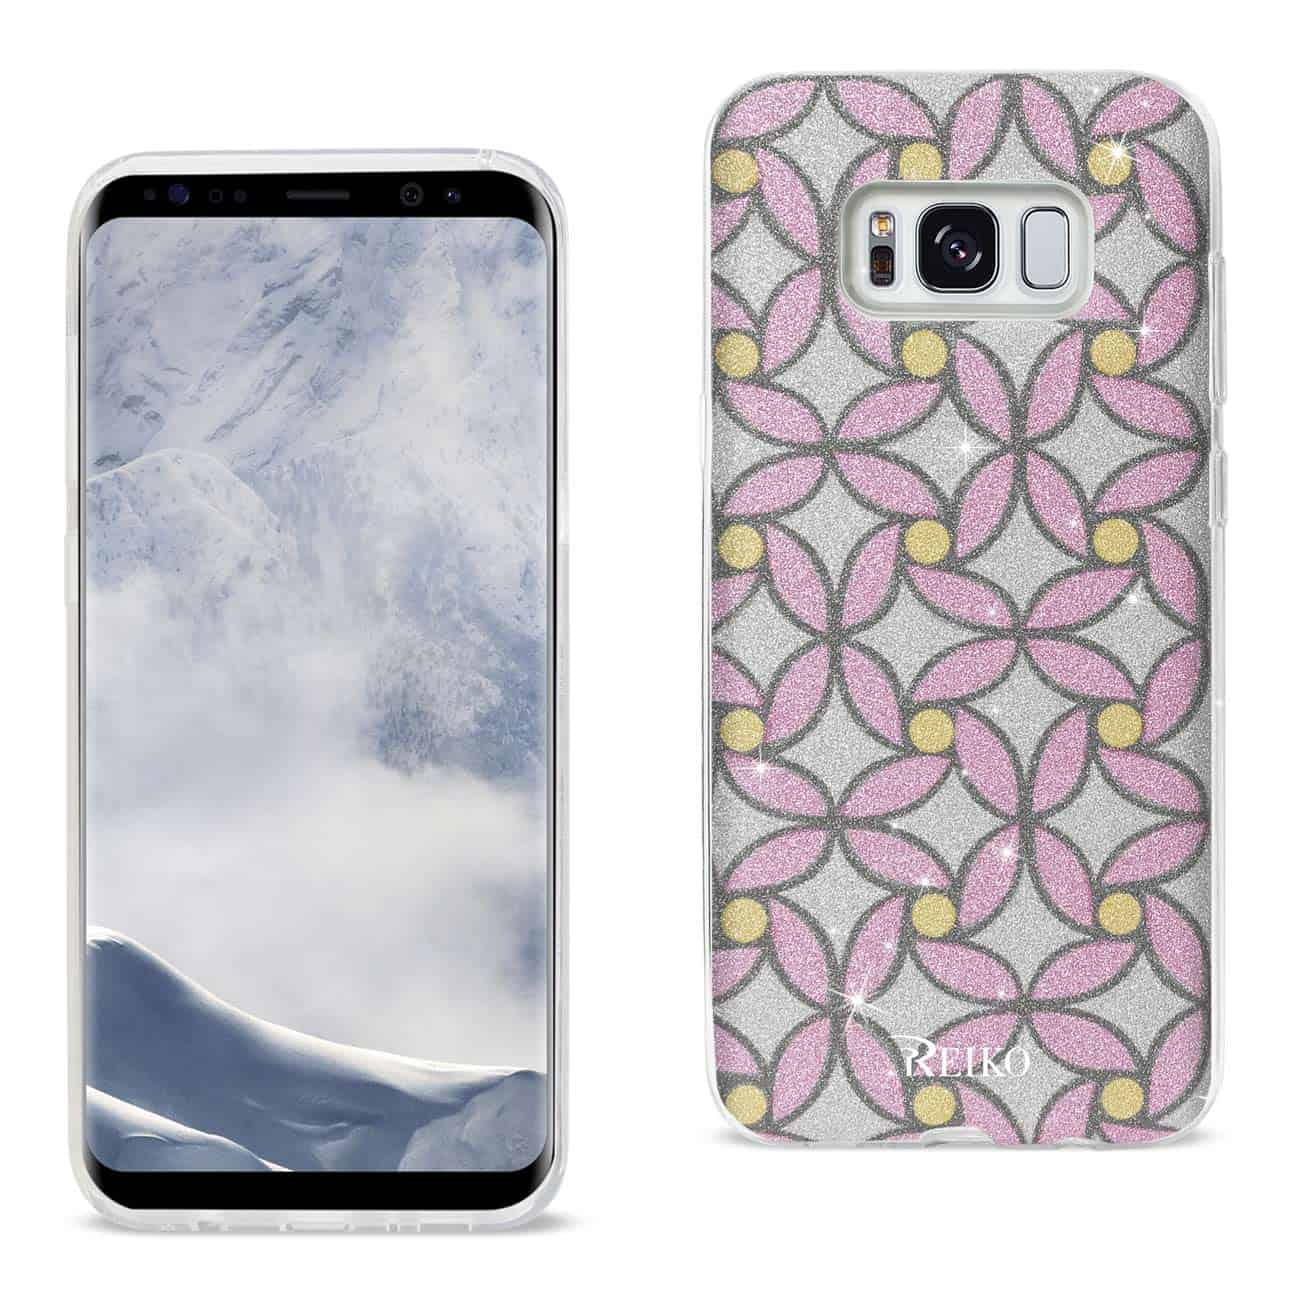 SAMSUNG GALAXY S8 EDGE/ S8 PLUS SHINE GLITTER SHIMMER FLOWER HYBRID CASE IN FLOWER PINK